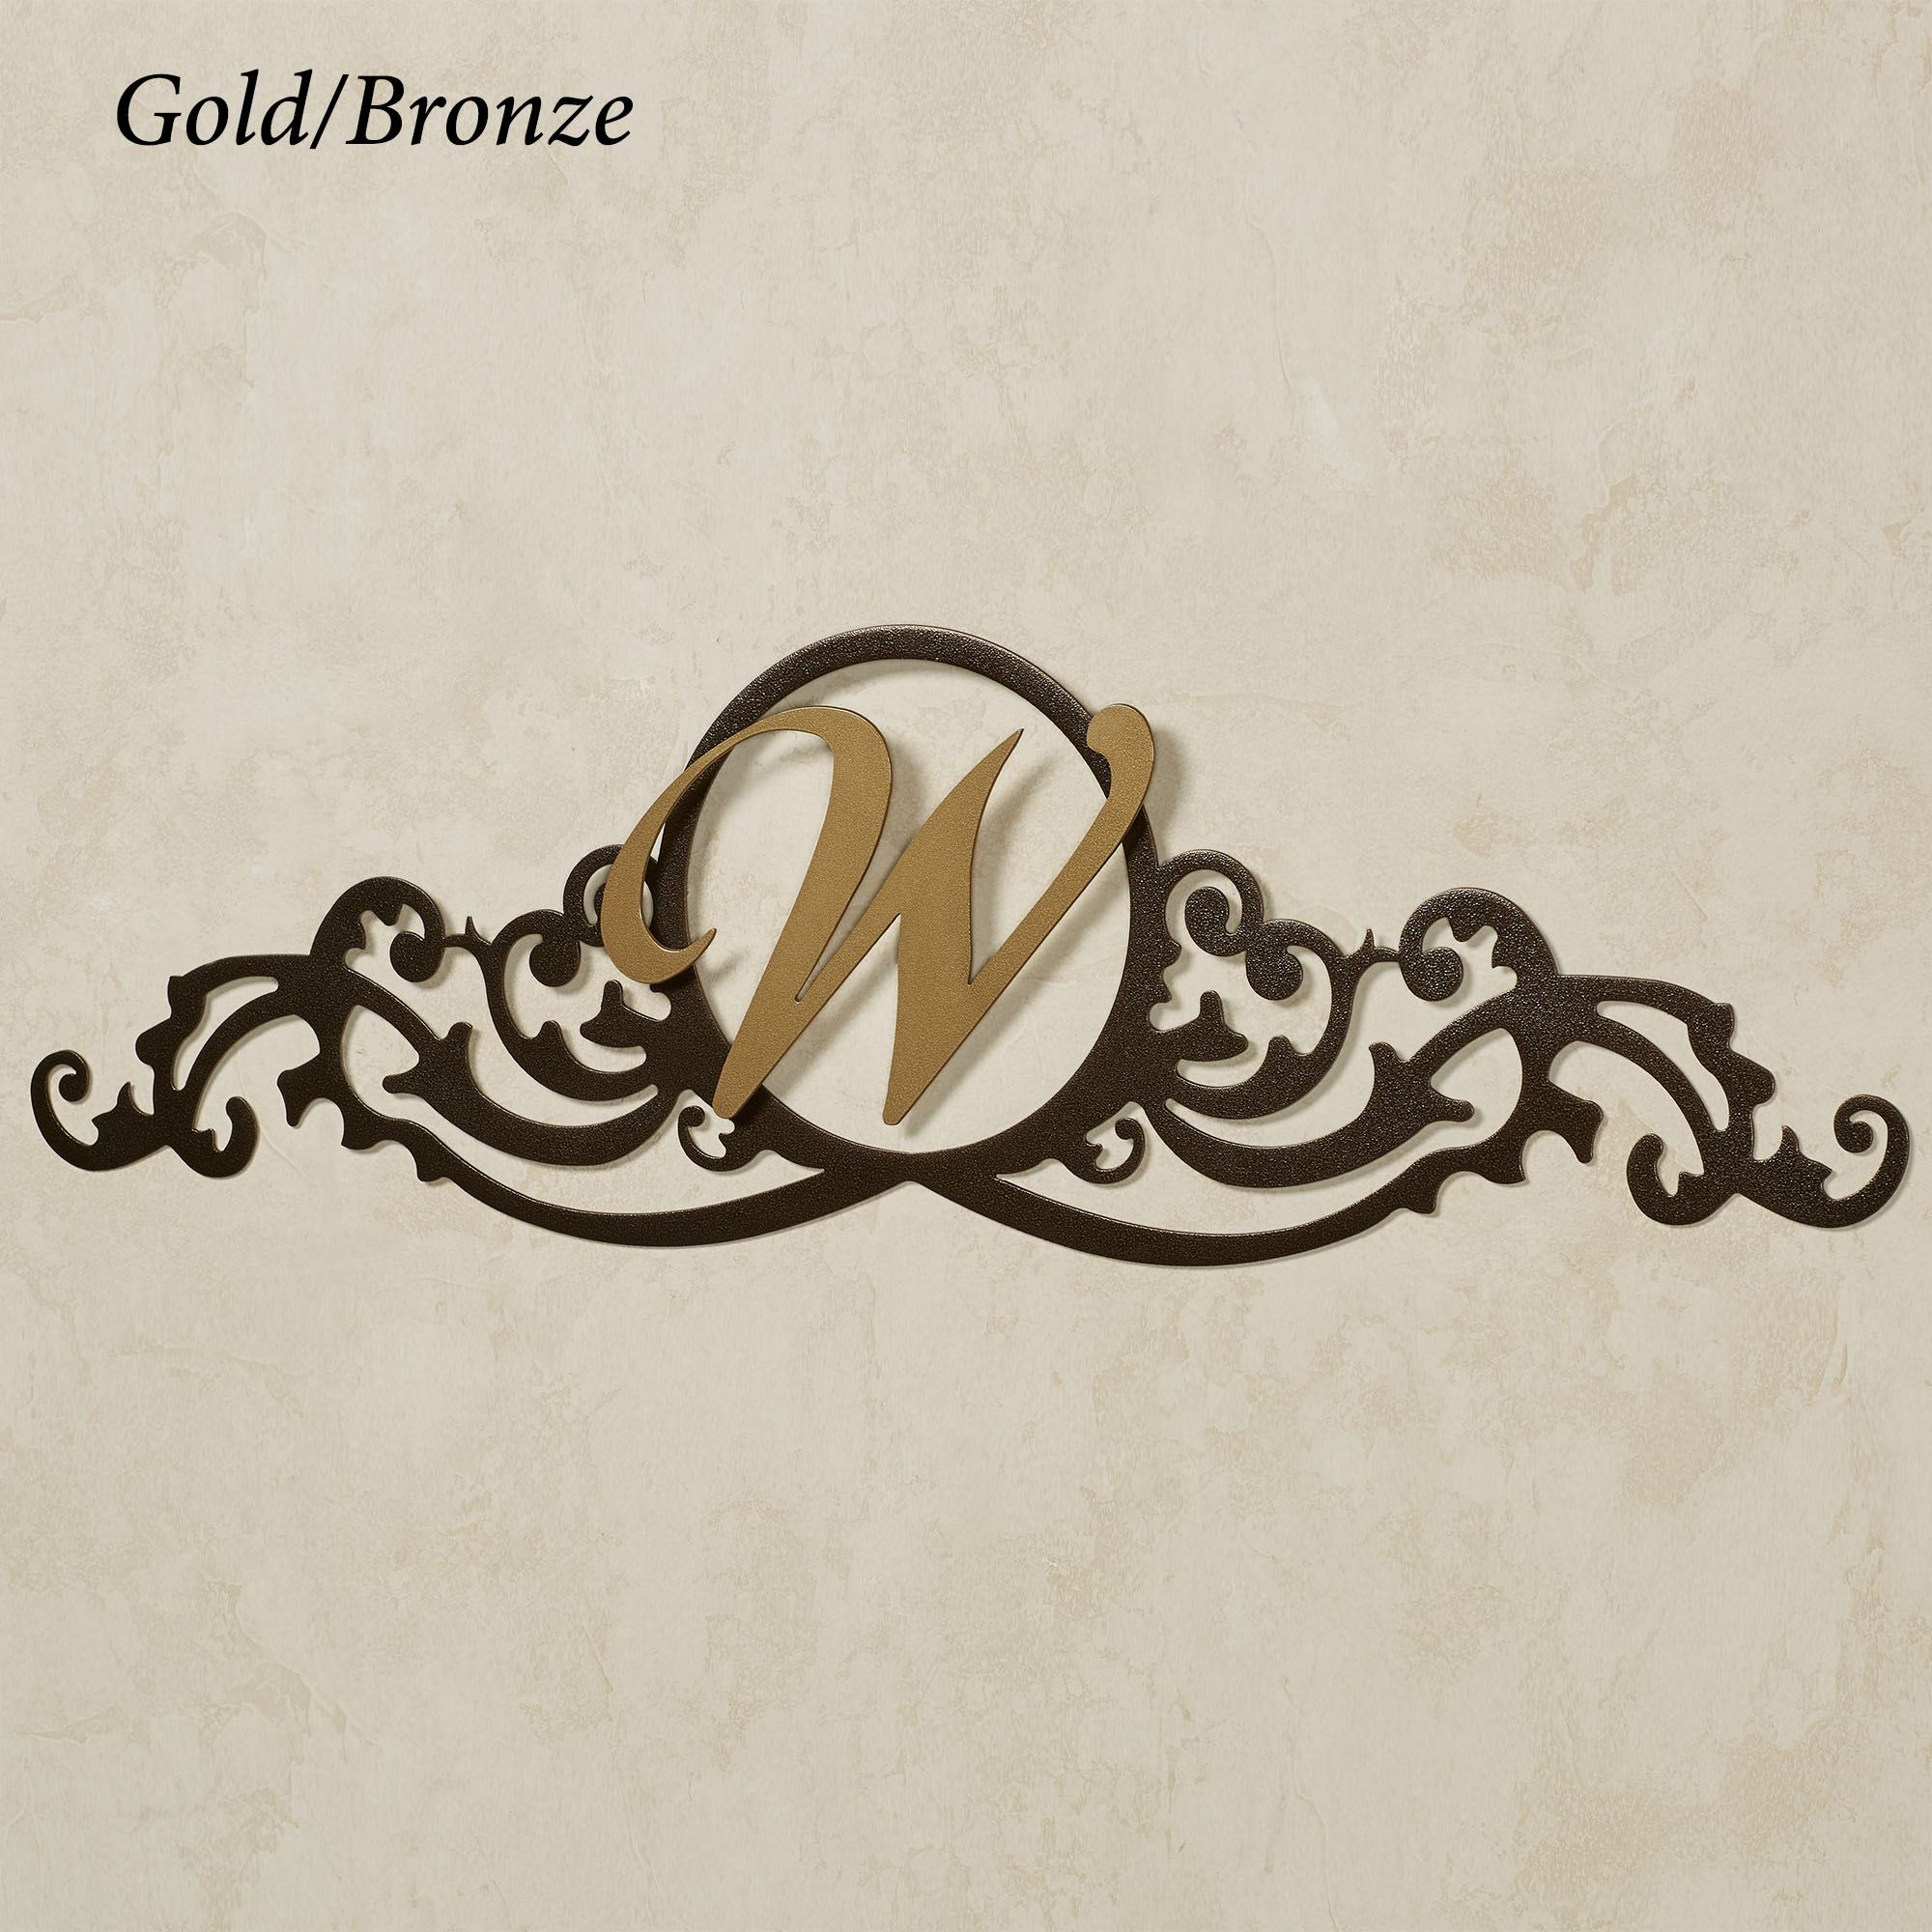 Kindred Personalized Monogram Wall Topper in Bronze